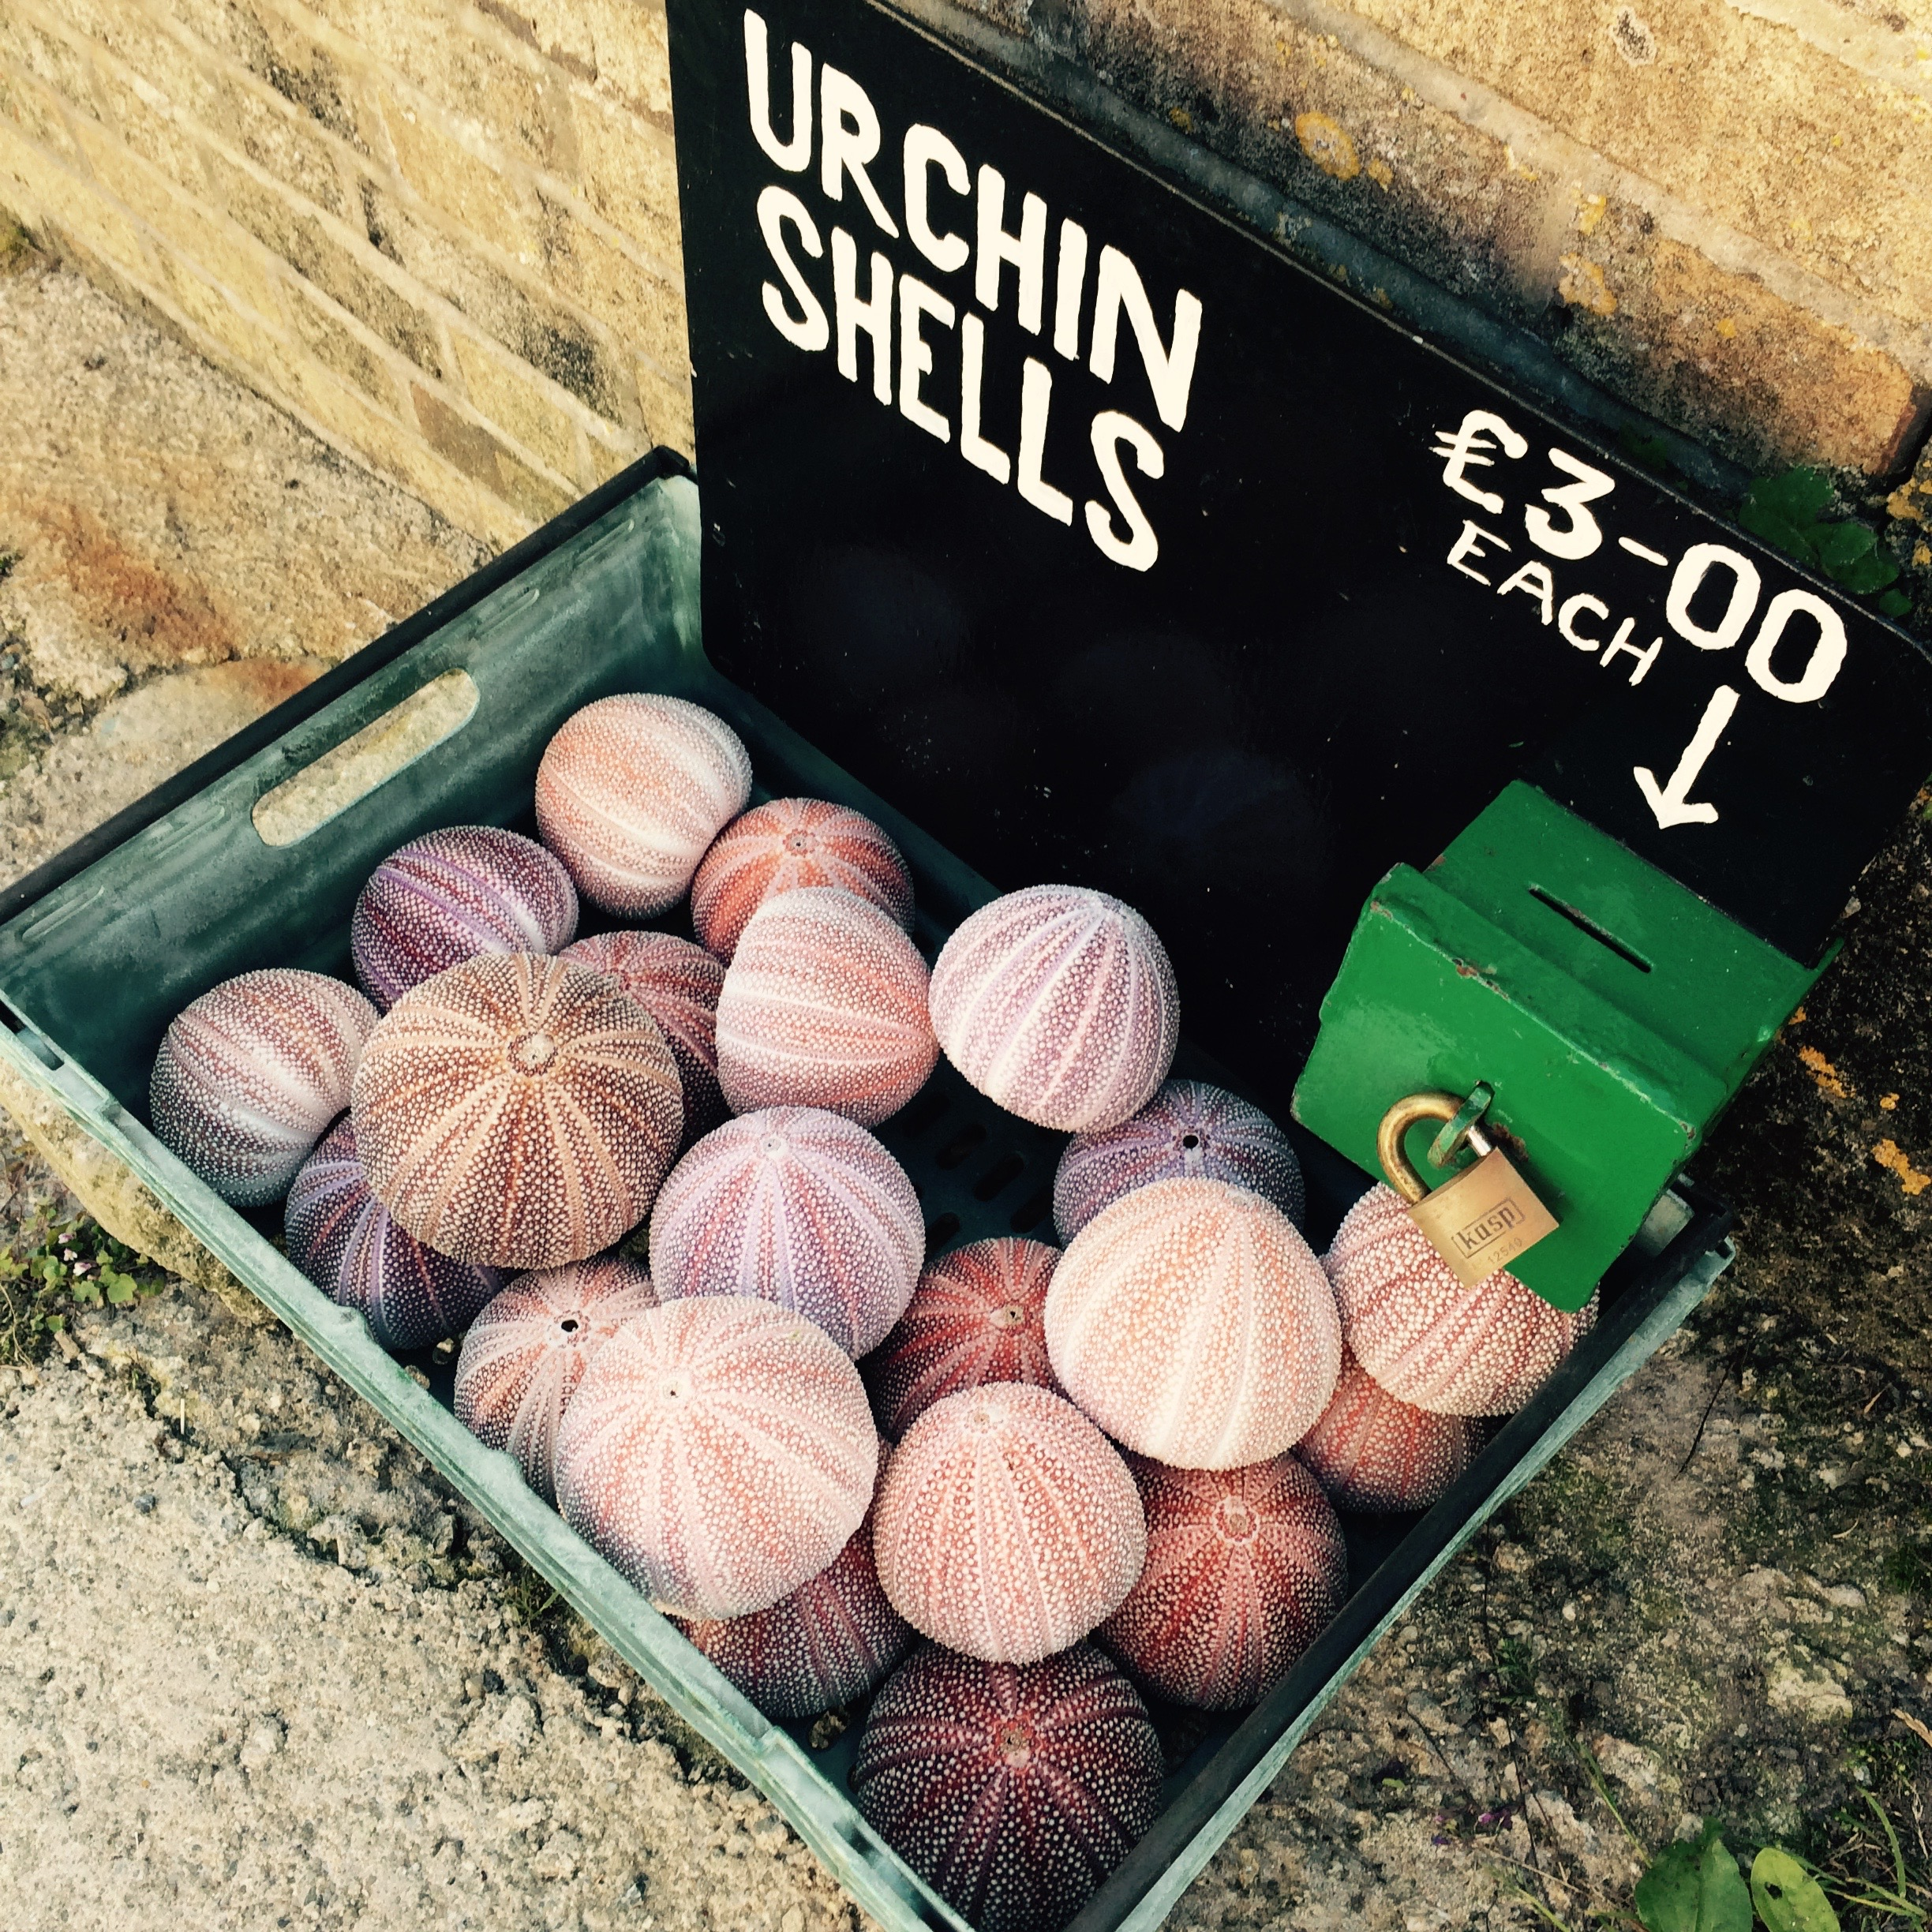 Cornish urchins